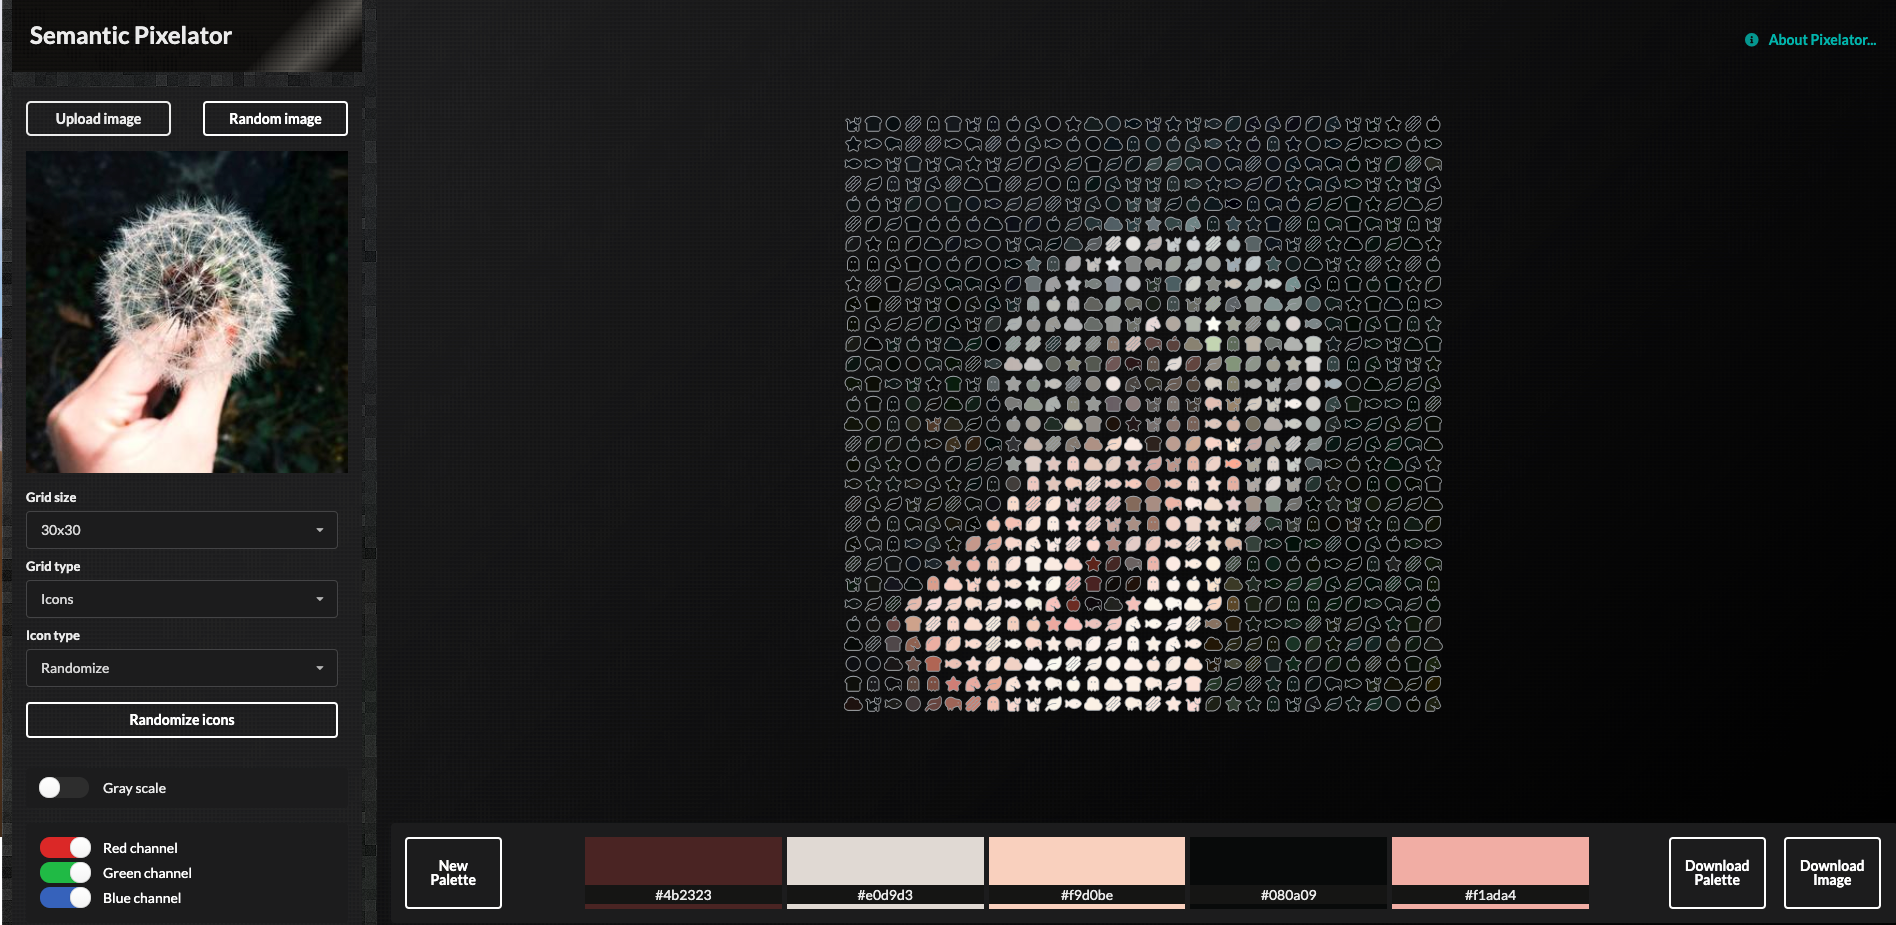 Screenshot from Semantic Pixelator app